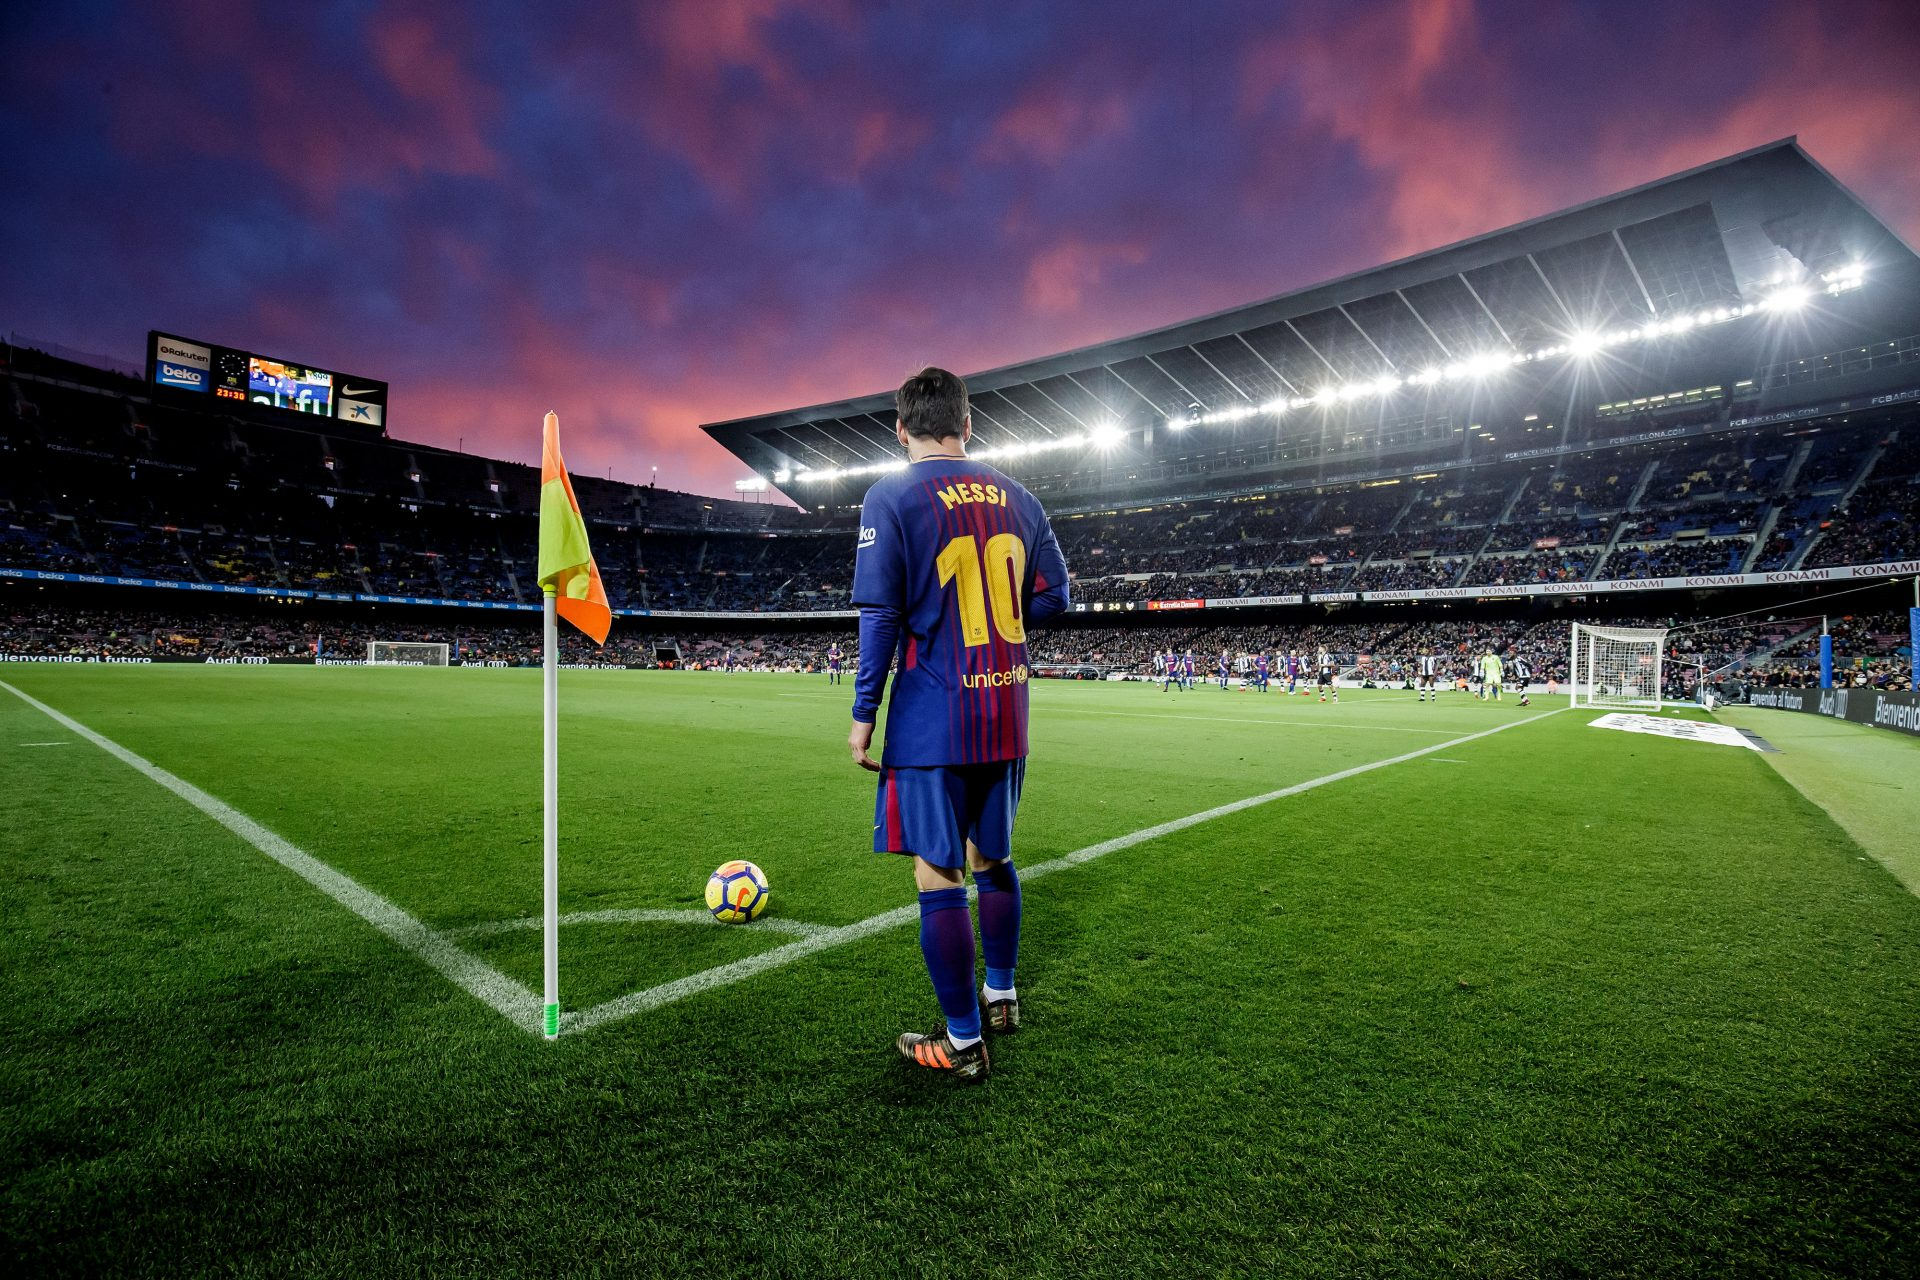 The king in his castle: Lionel Messi prepares to take a corner at the Camp Nou. In 2011/12, he scored a club-record 46 home goals, 35 of them in La Liga. Photo: Laurens Lindhout/Soccrates/Getty Images